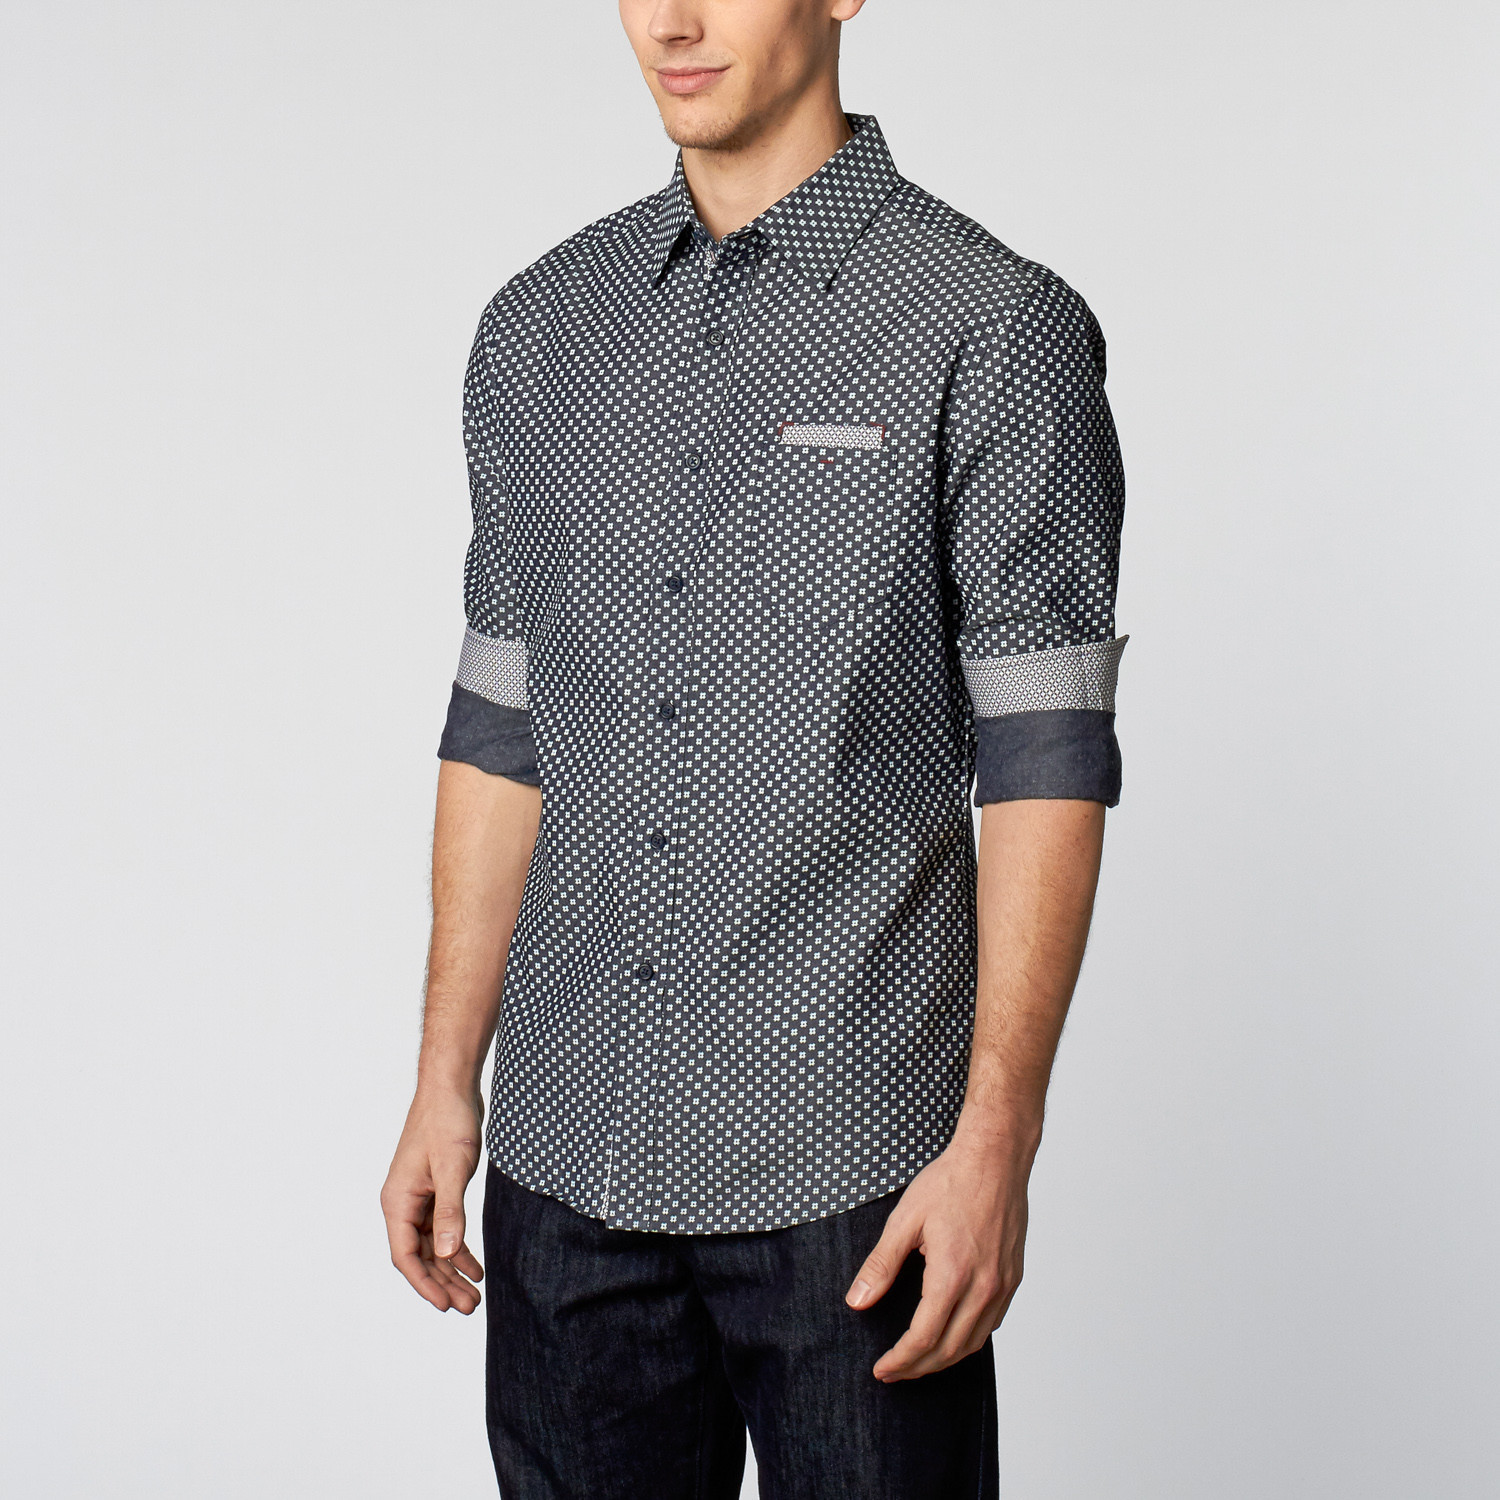 Woven Patterned Button Up Shirt Navy S Smash Trends